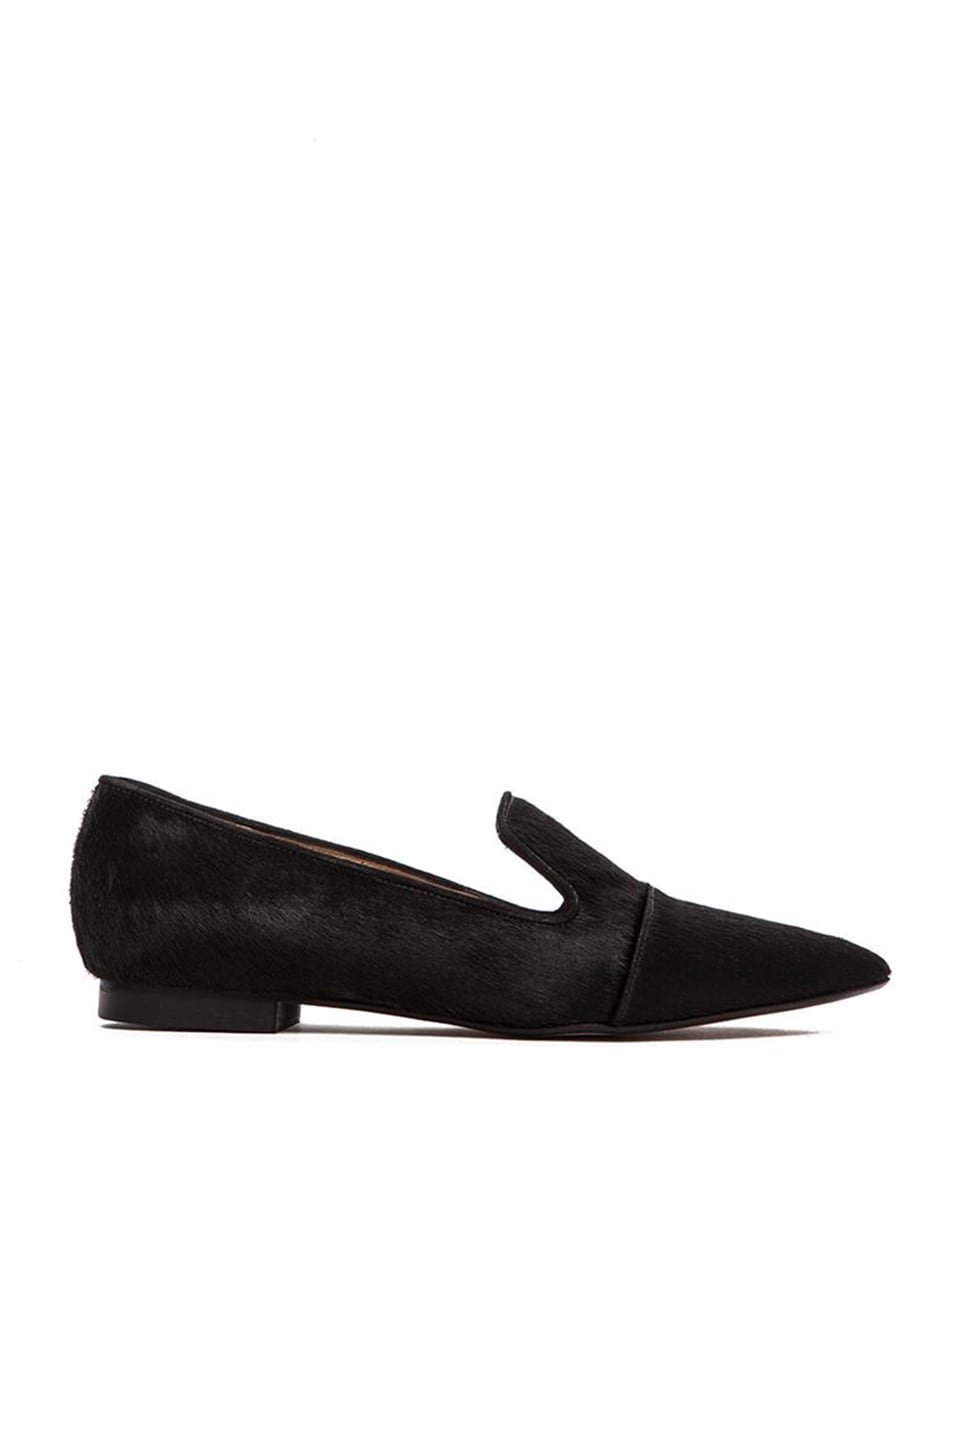 The Mode Collective Point Loafer with Fur in Black